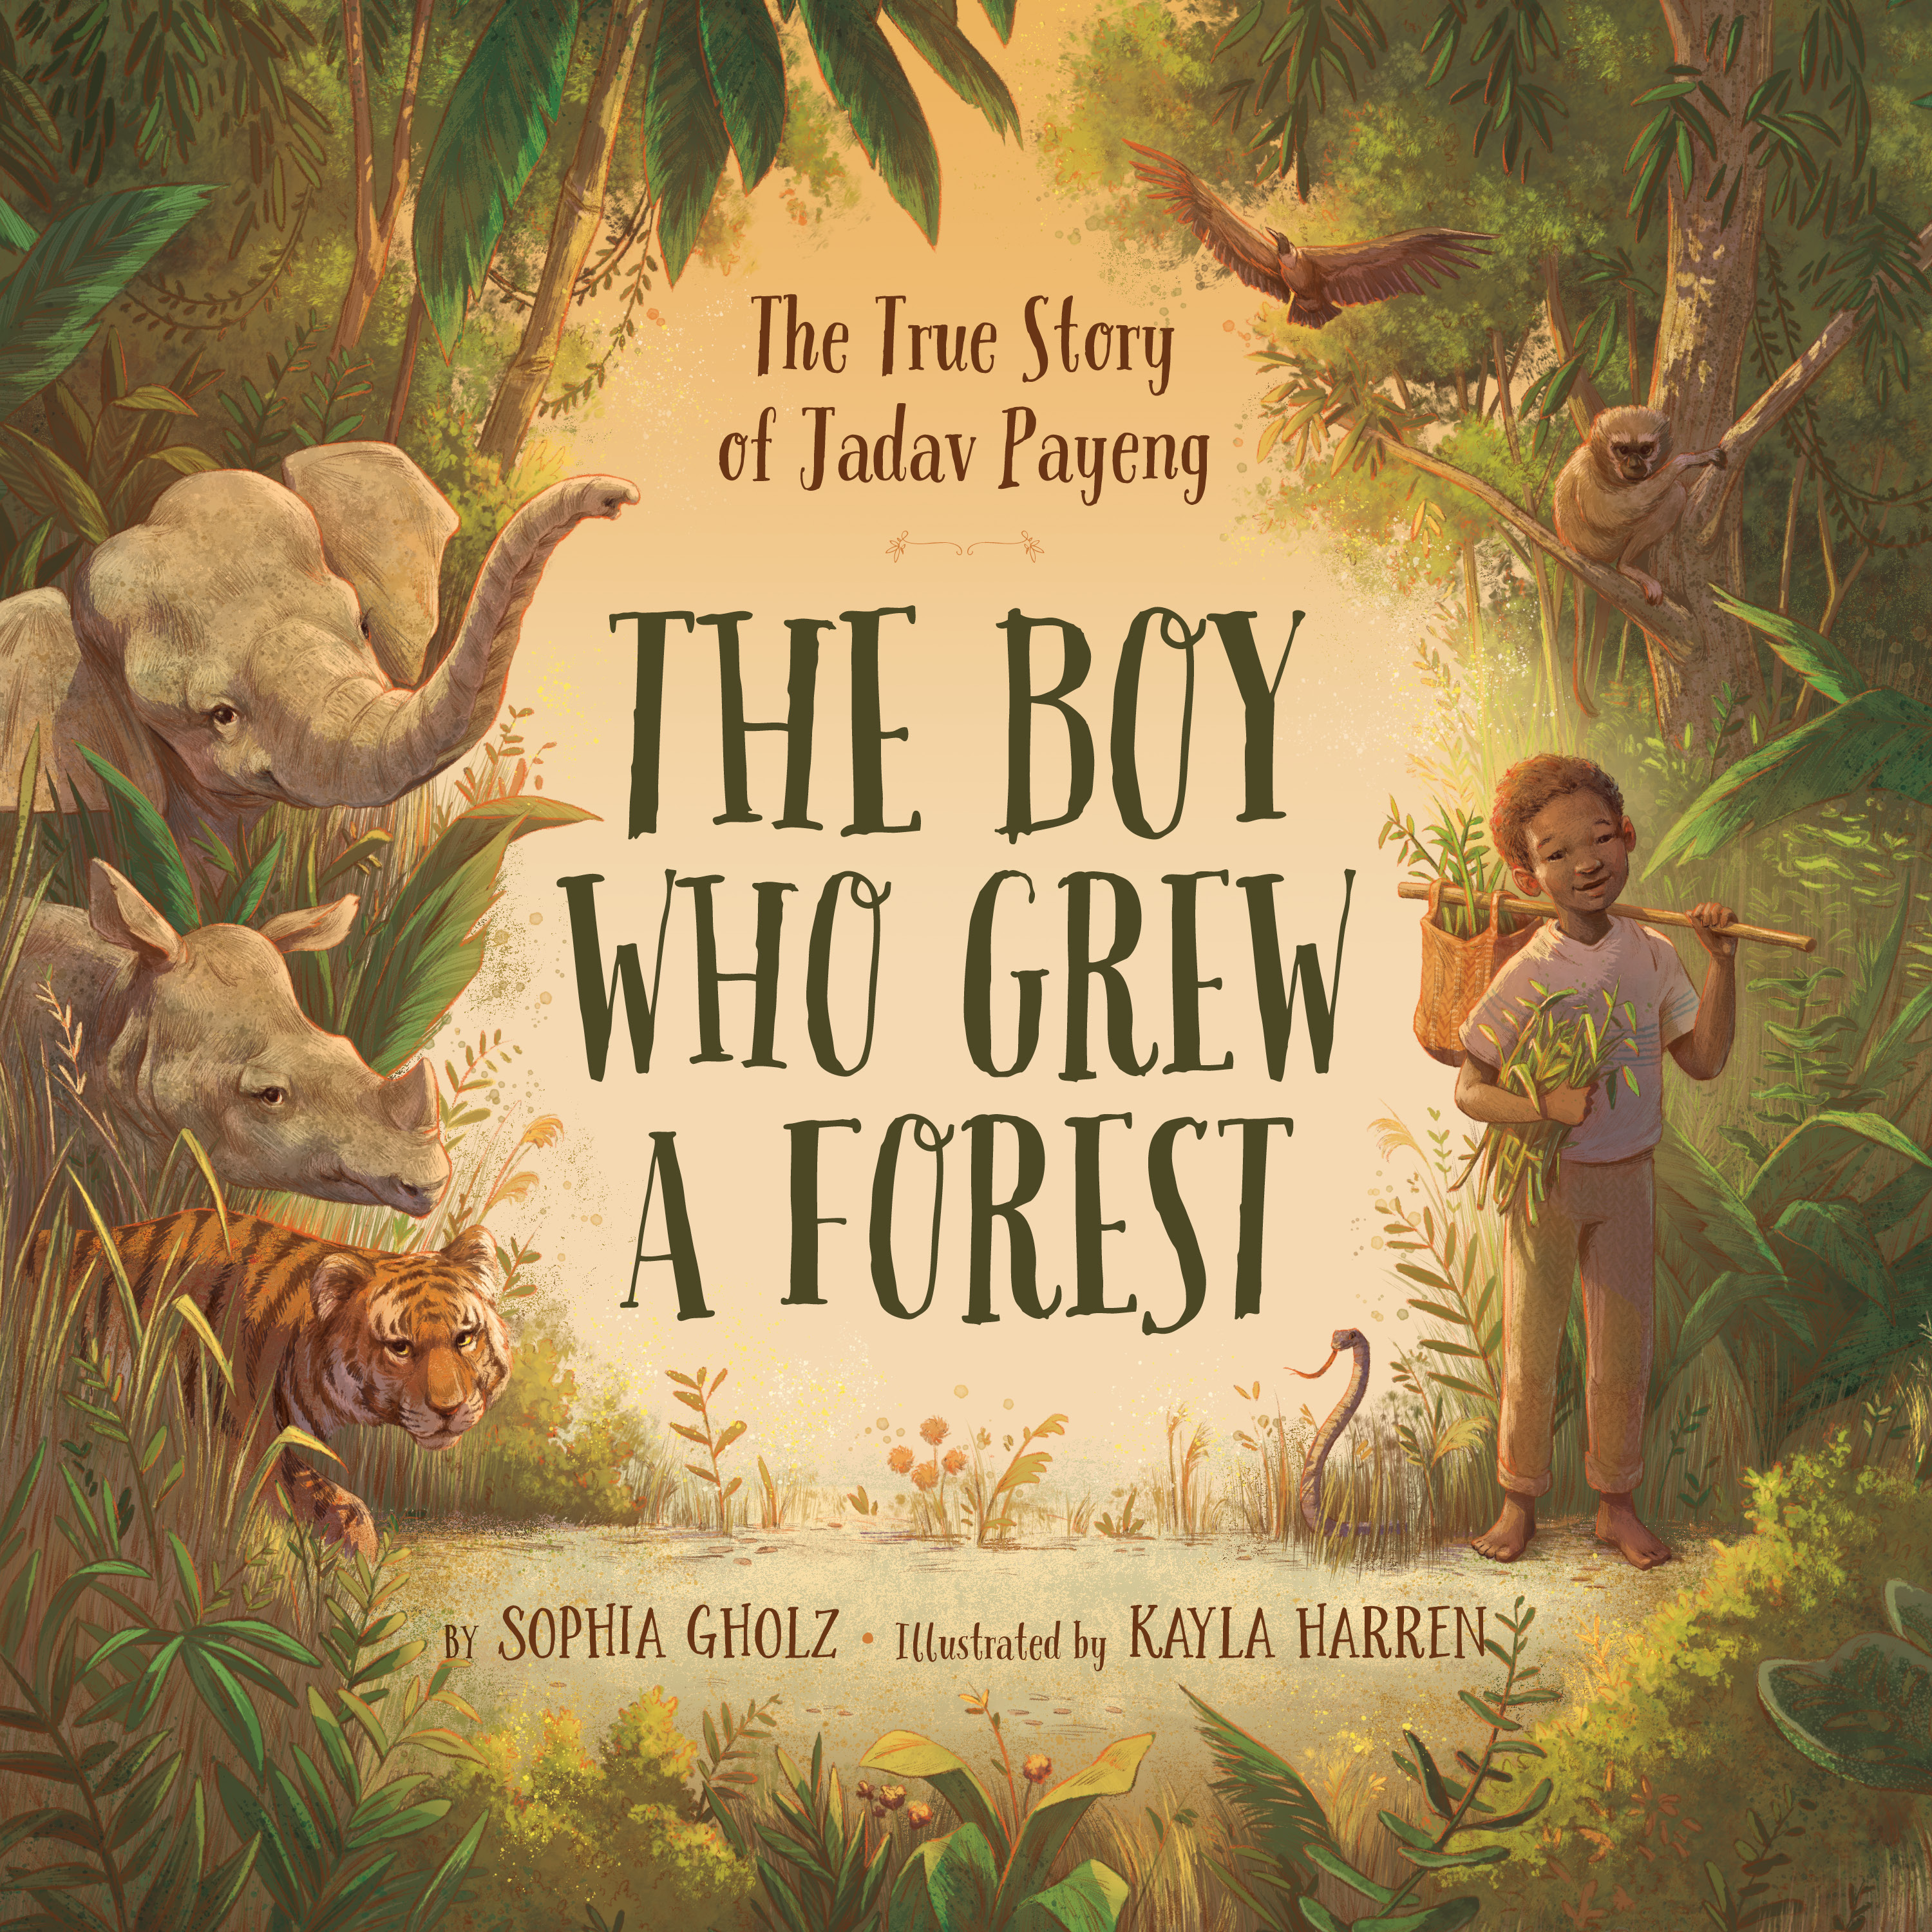 The Boy Who Grew A Forest by Sophia Gholz